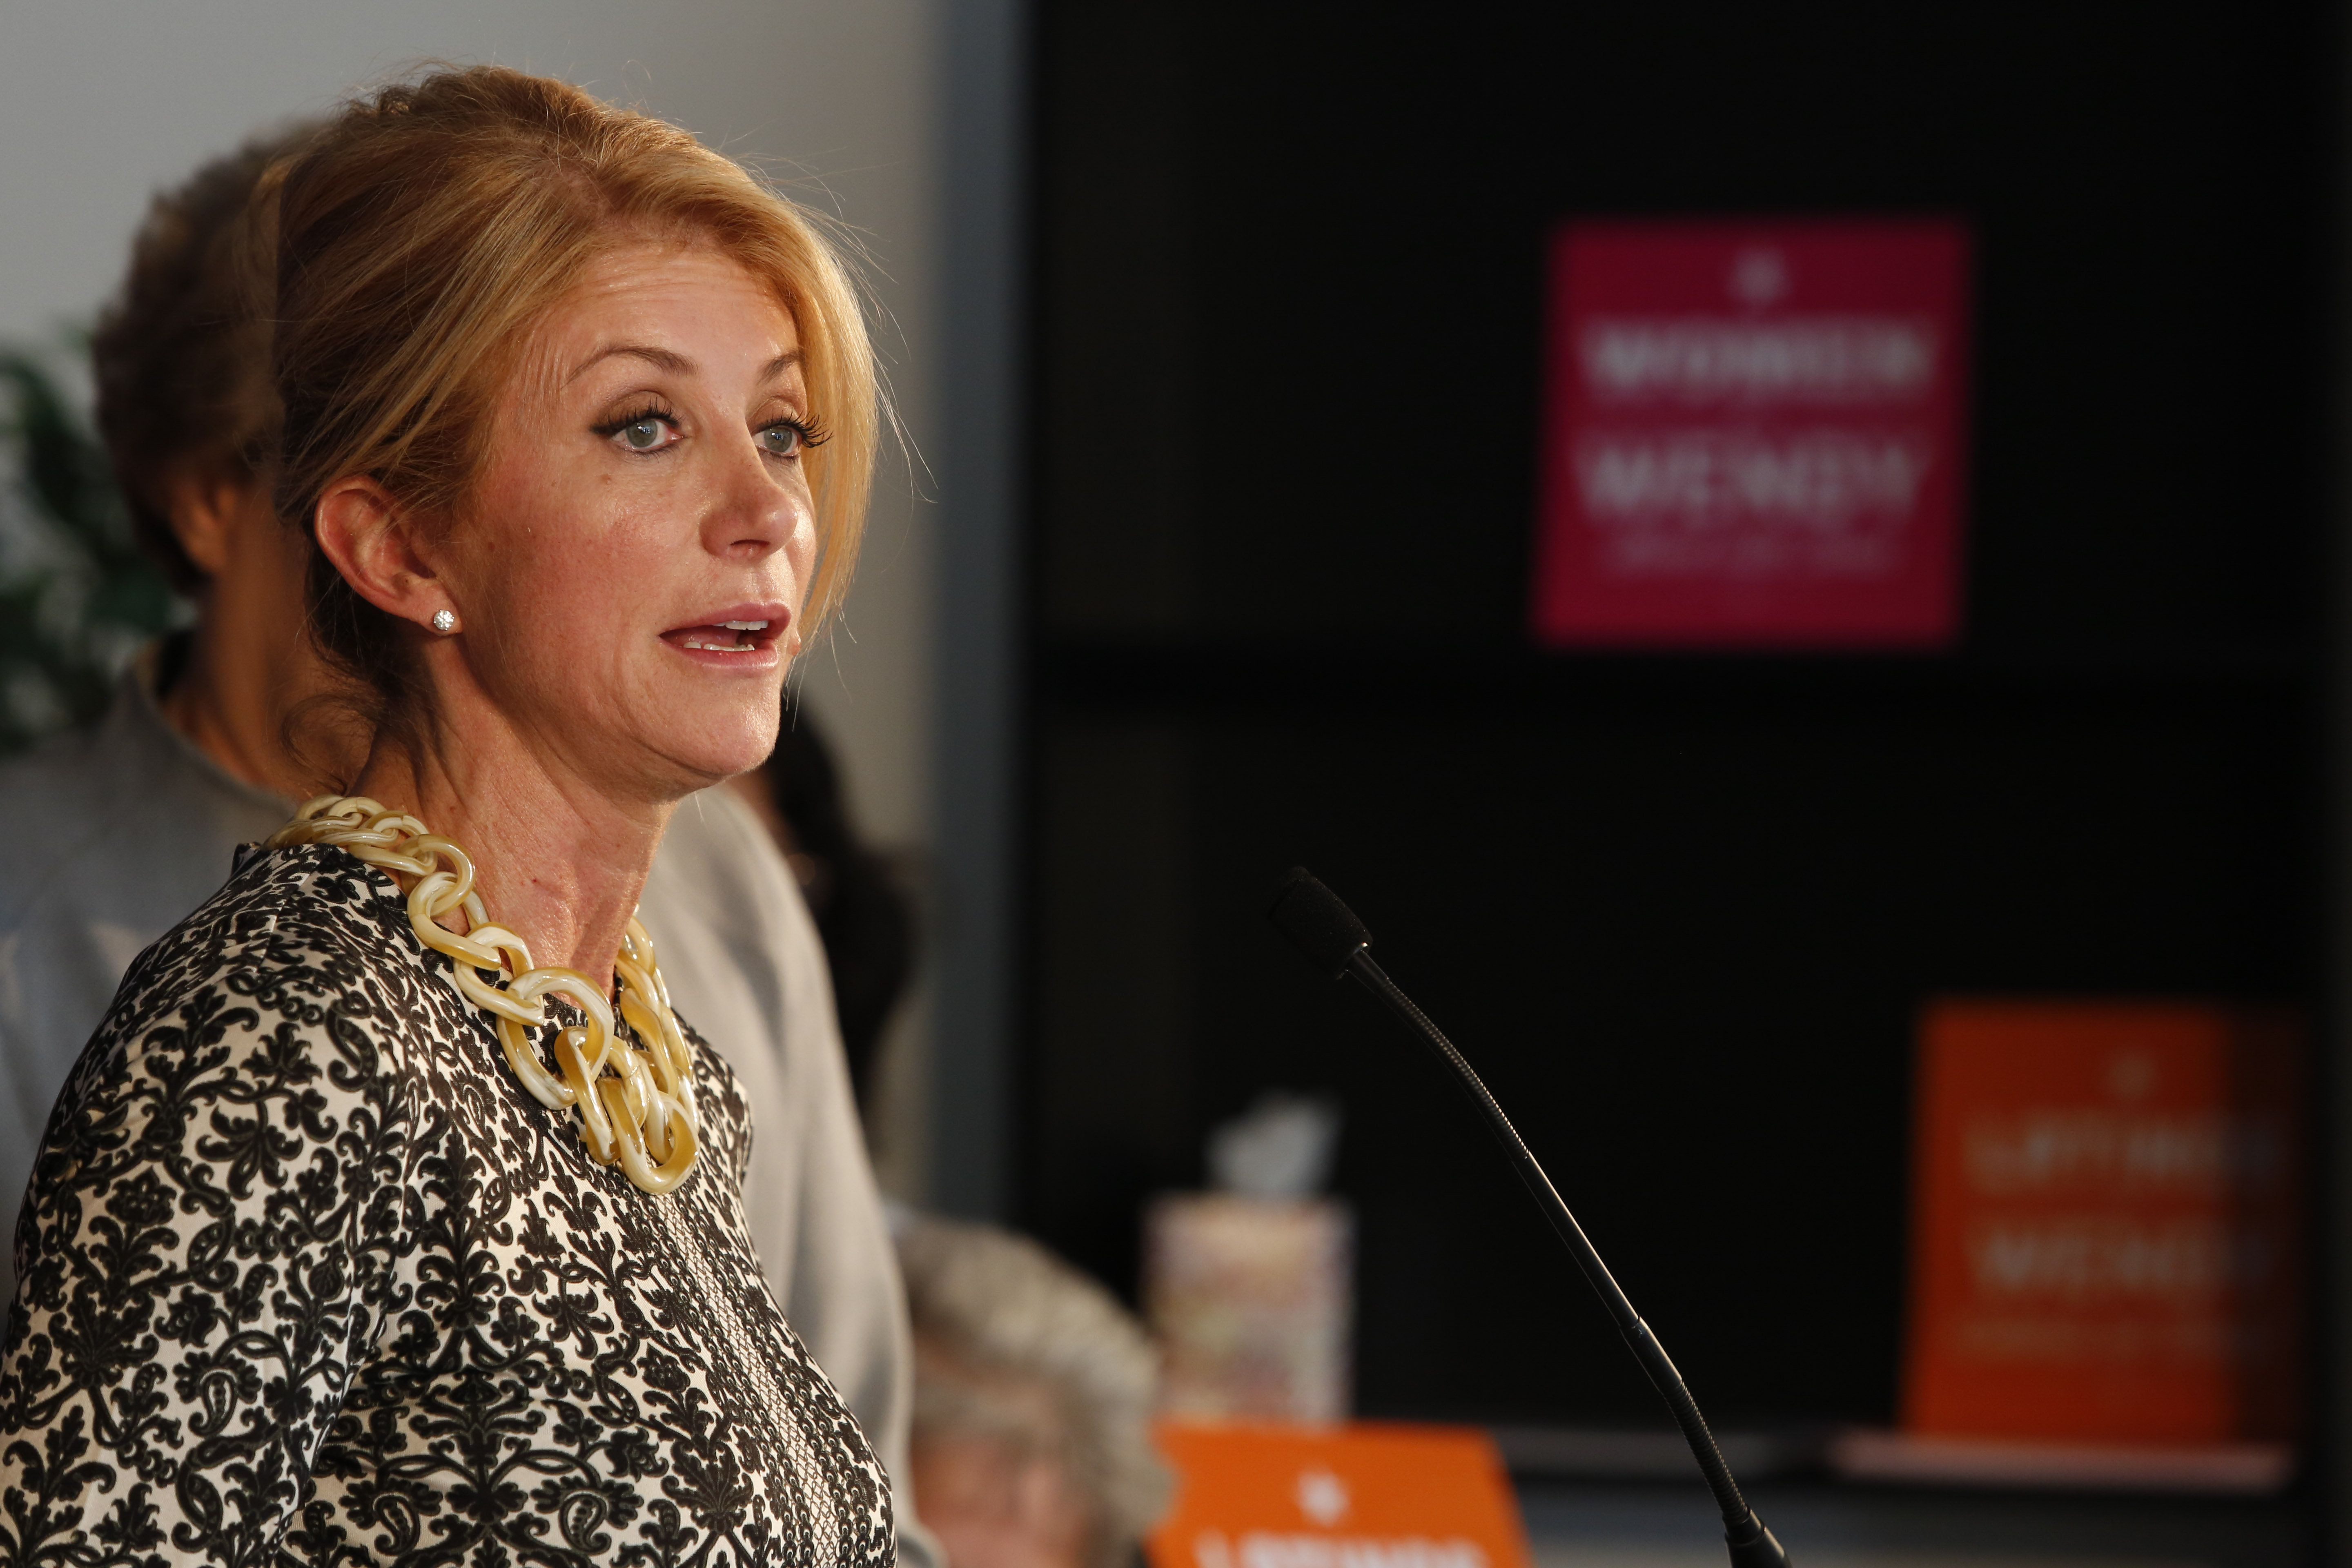 HOUSTON, TX - OCTOBER 16:  Gubernatorial Democratic candidate and Texas State Senator Wendy Davis speaks about a recent Supreme Court ruling on easing HB2, a Texas state abortion law, on October 16, 2014 in Houston, Texas. Davis is going up against Republican Texas Attorney General Greg Abbott for governor in the Nobember 4, 2014 election. (Photo by Eric Kayne/Getty Images)